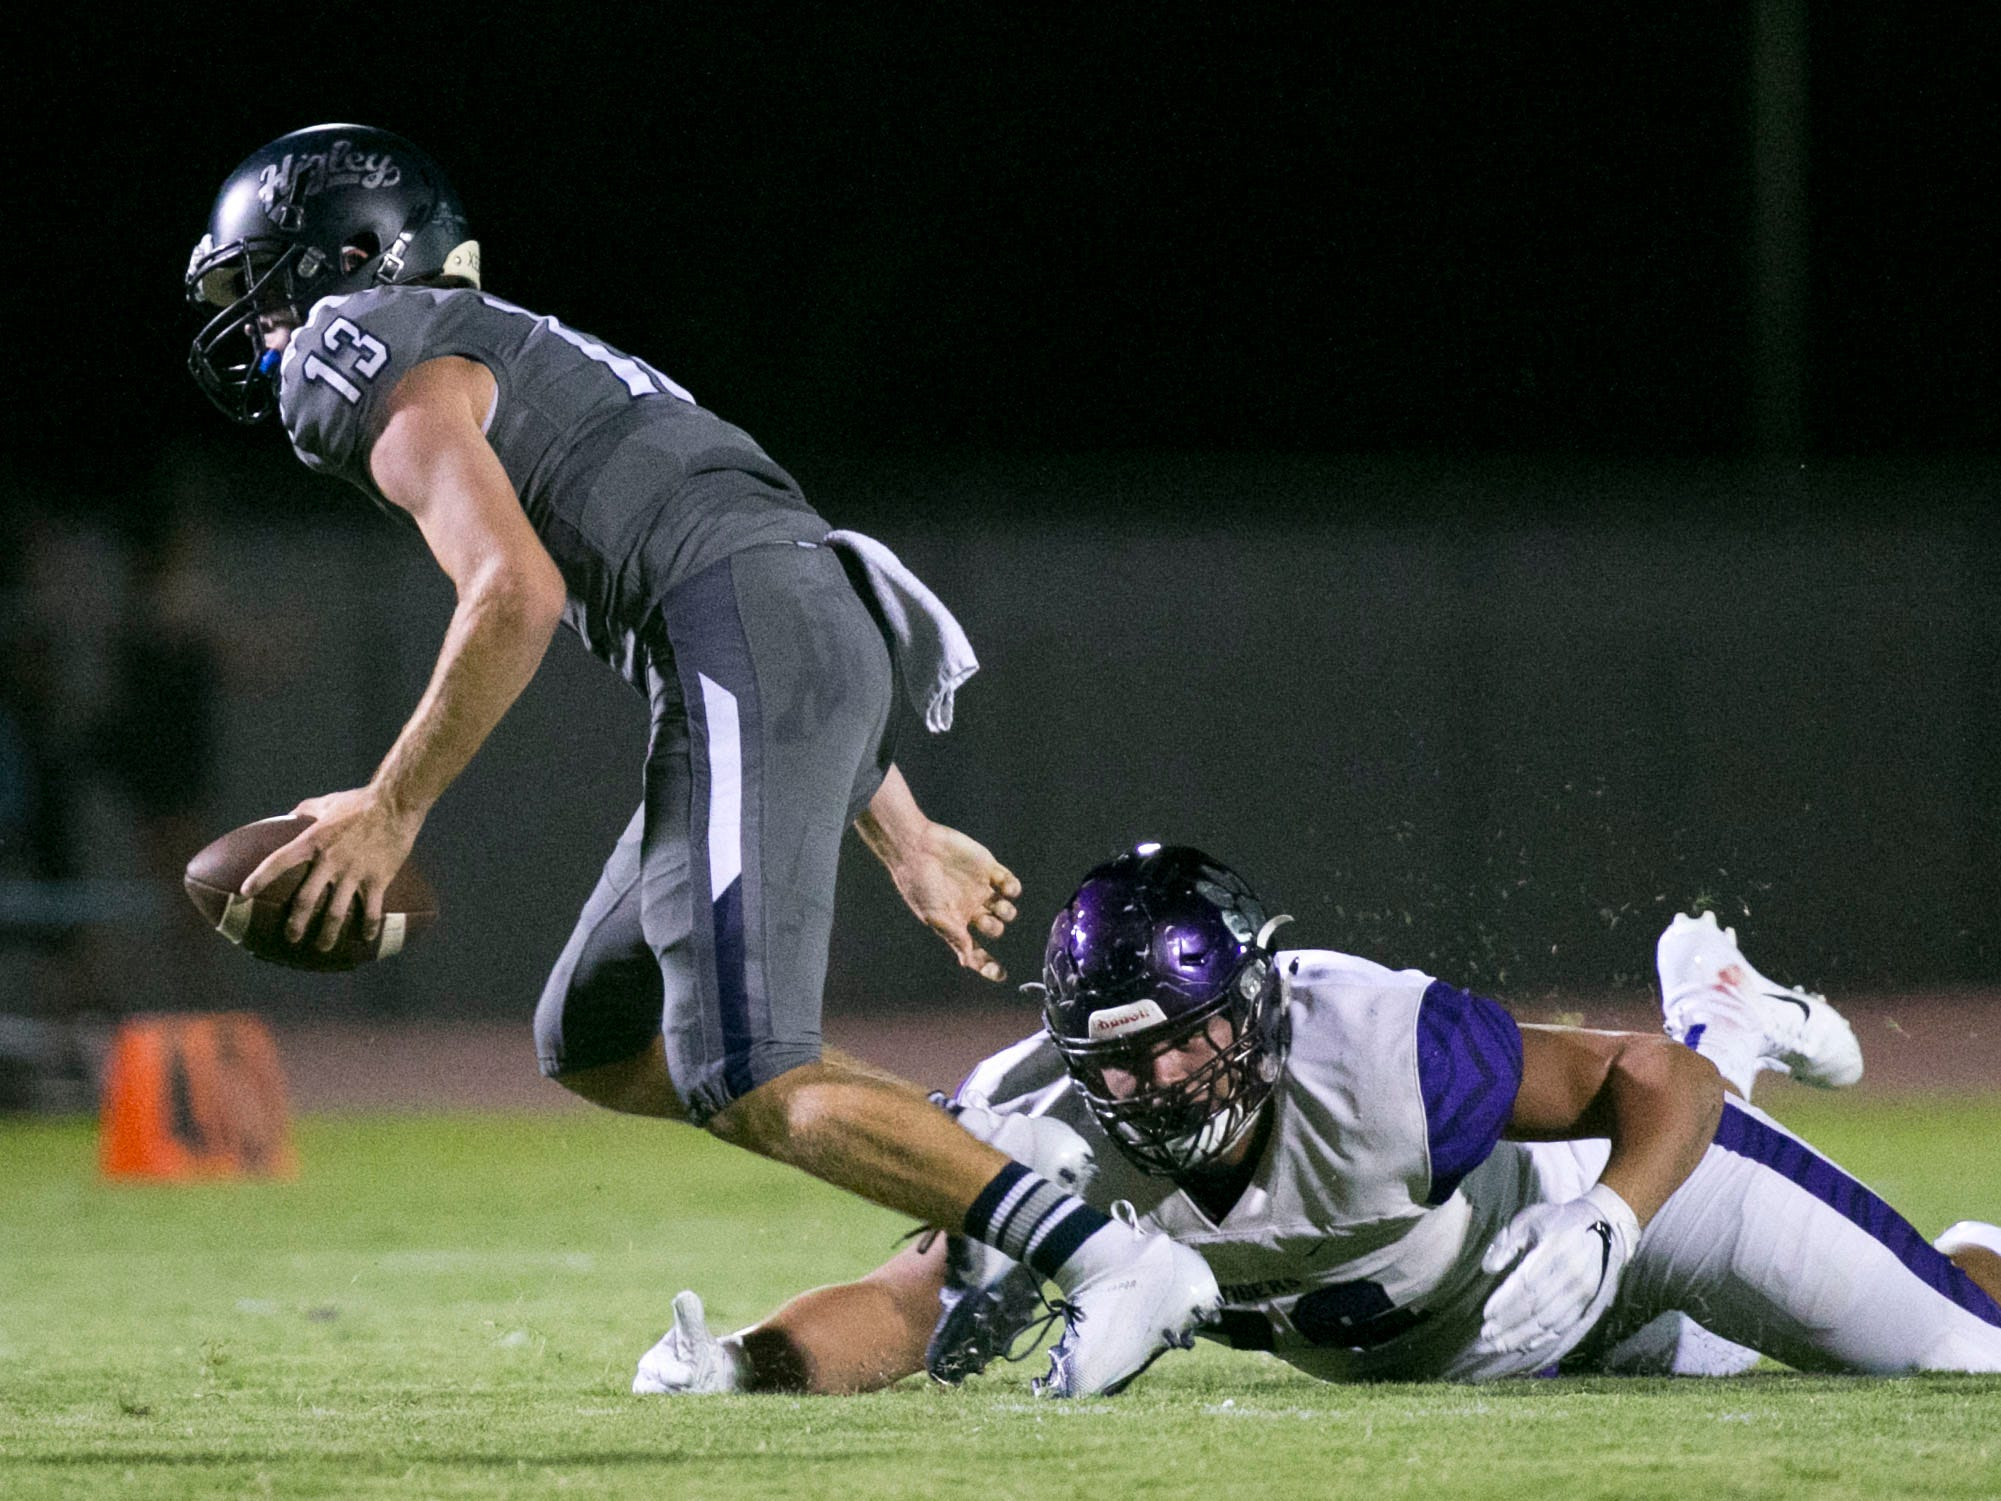 Higley High quarterback Spencer Brasch escapes the grasp of Millennium High defensive lineman Anthonie Cooper during the first quarter of the high school football game at Higley High in Gilbert on Friday evening, September 14, 2018.